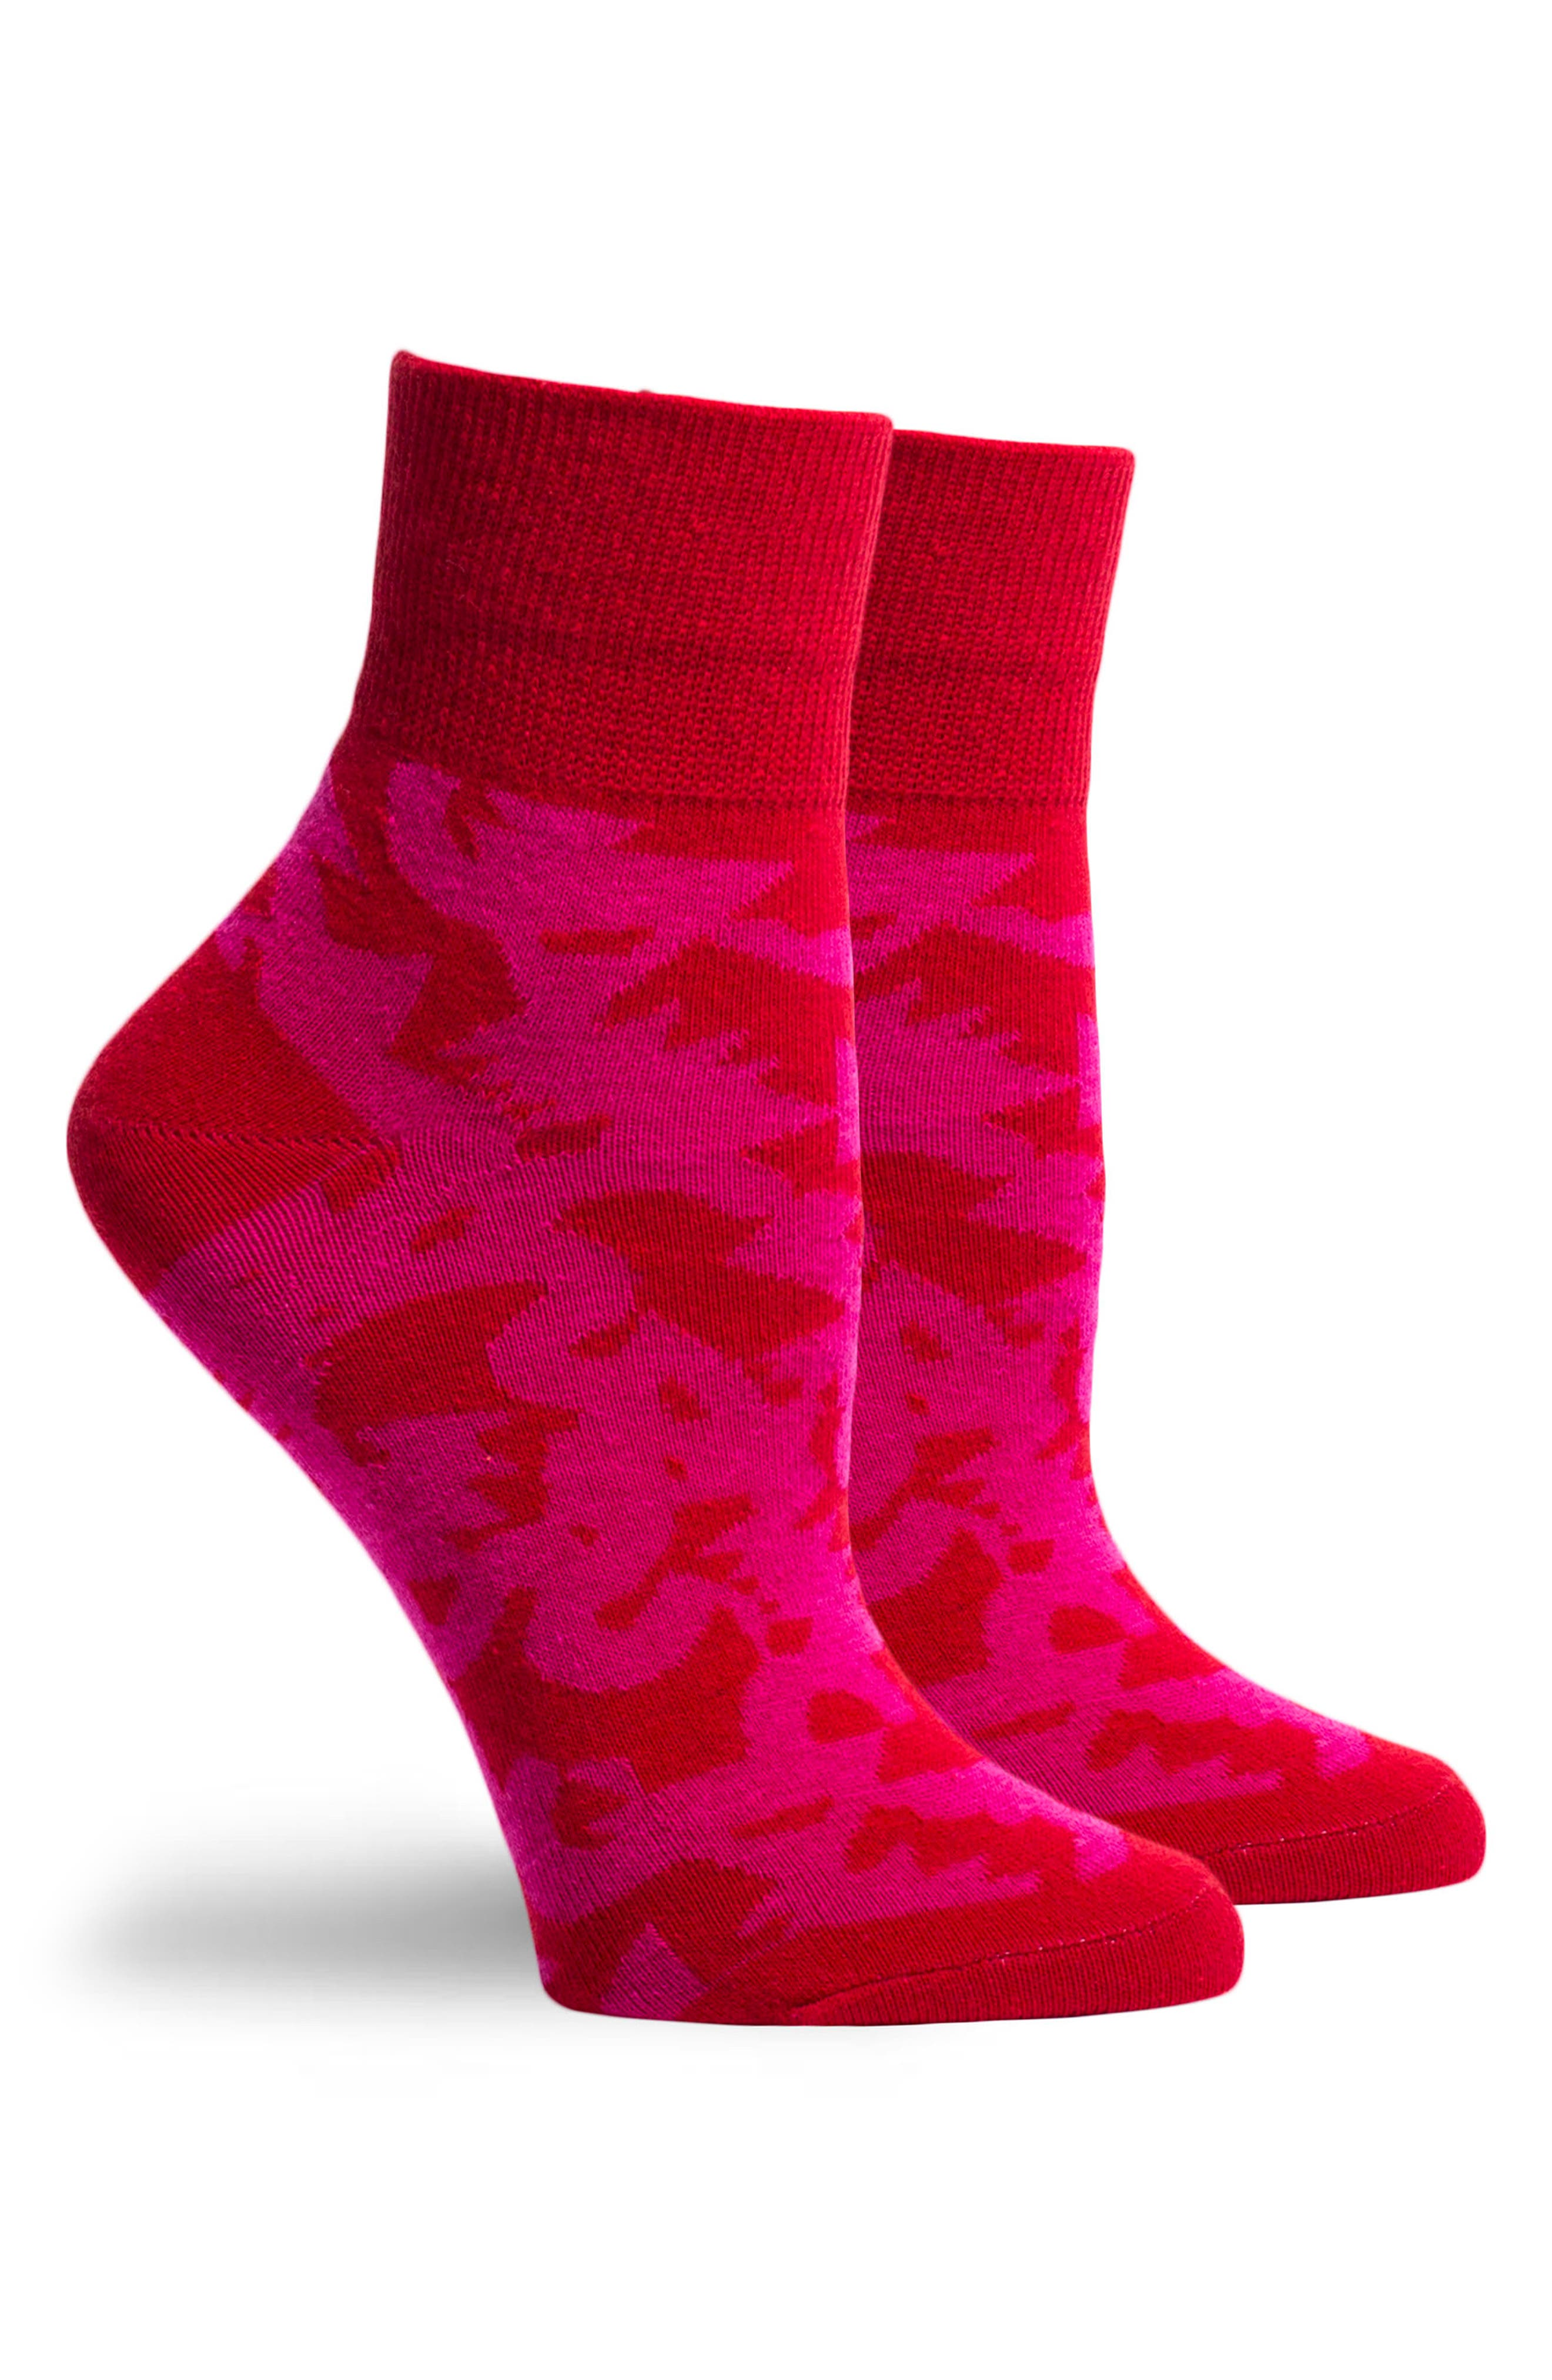 Abstract Will Bryant Socks,                             Alternate thumbnail 3, color,                             Red